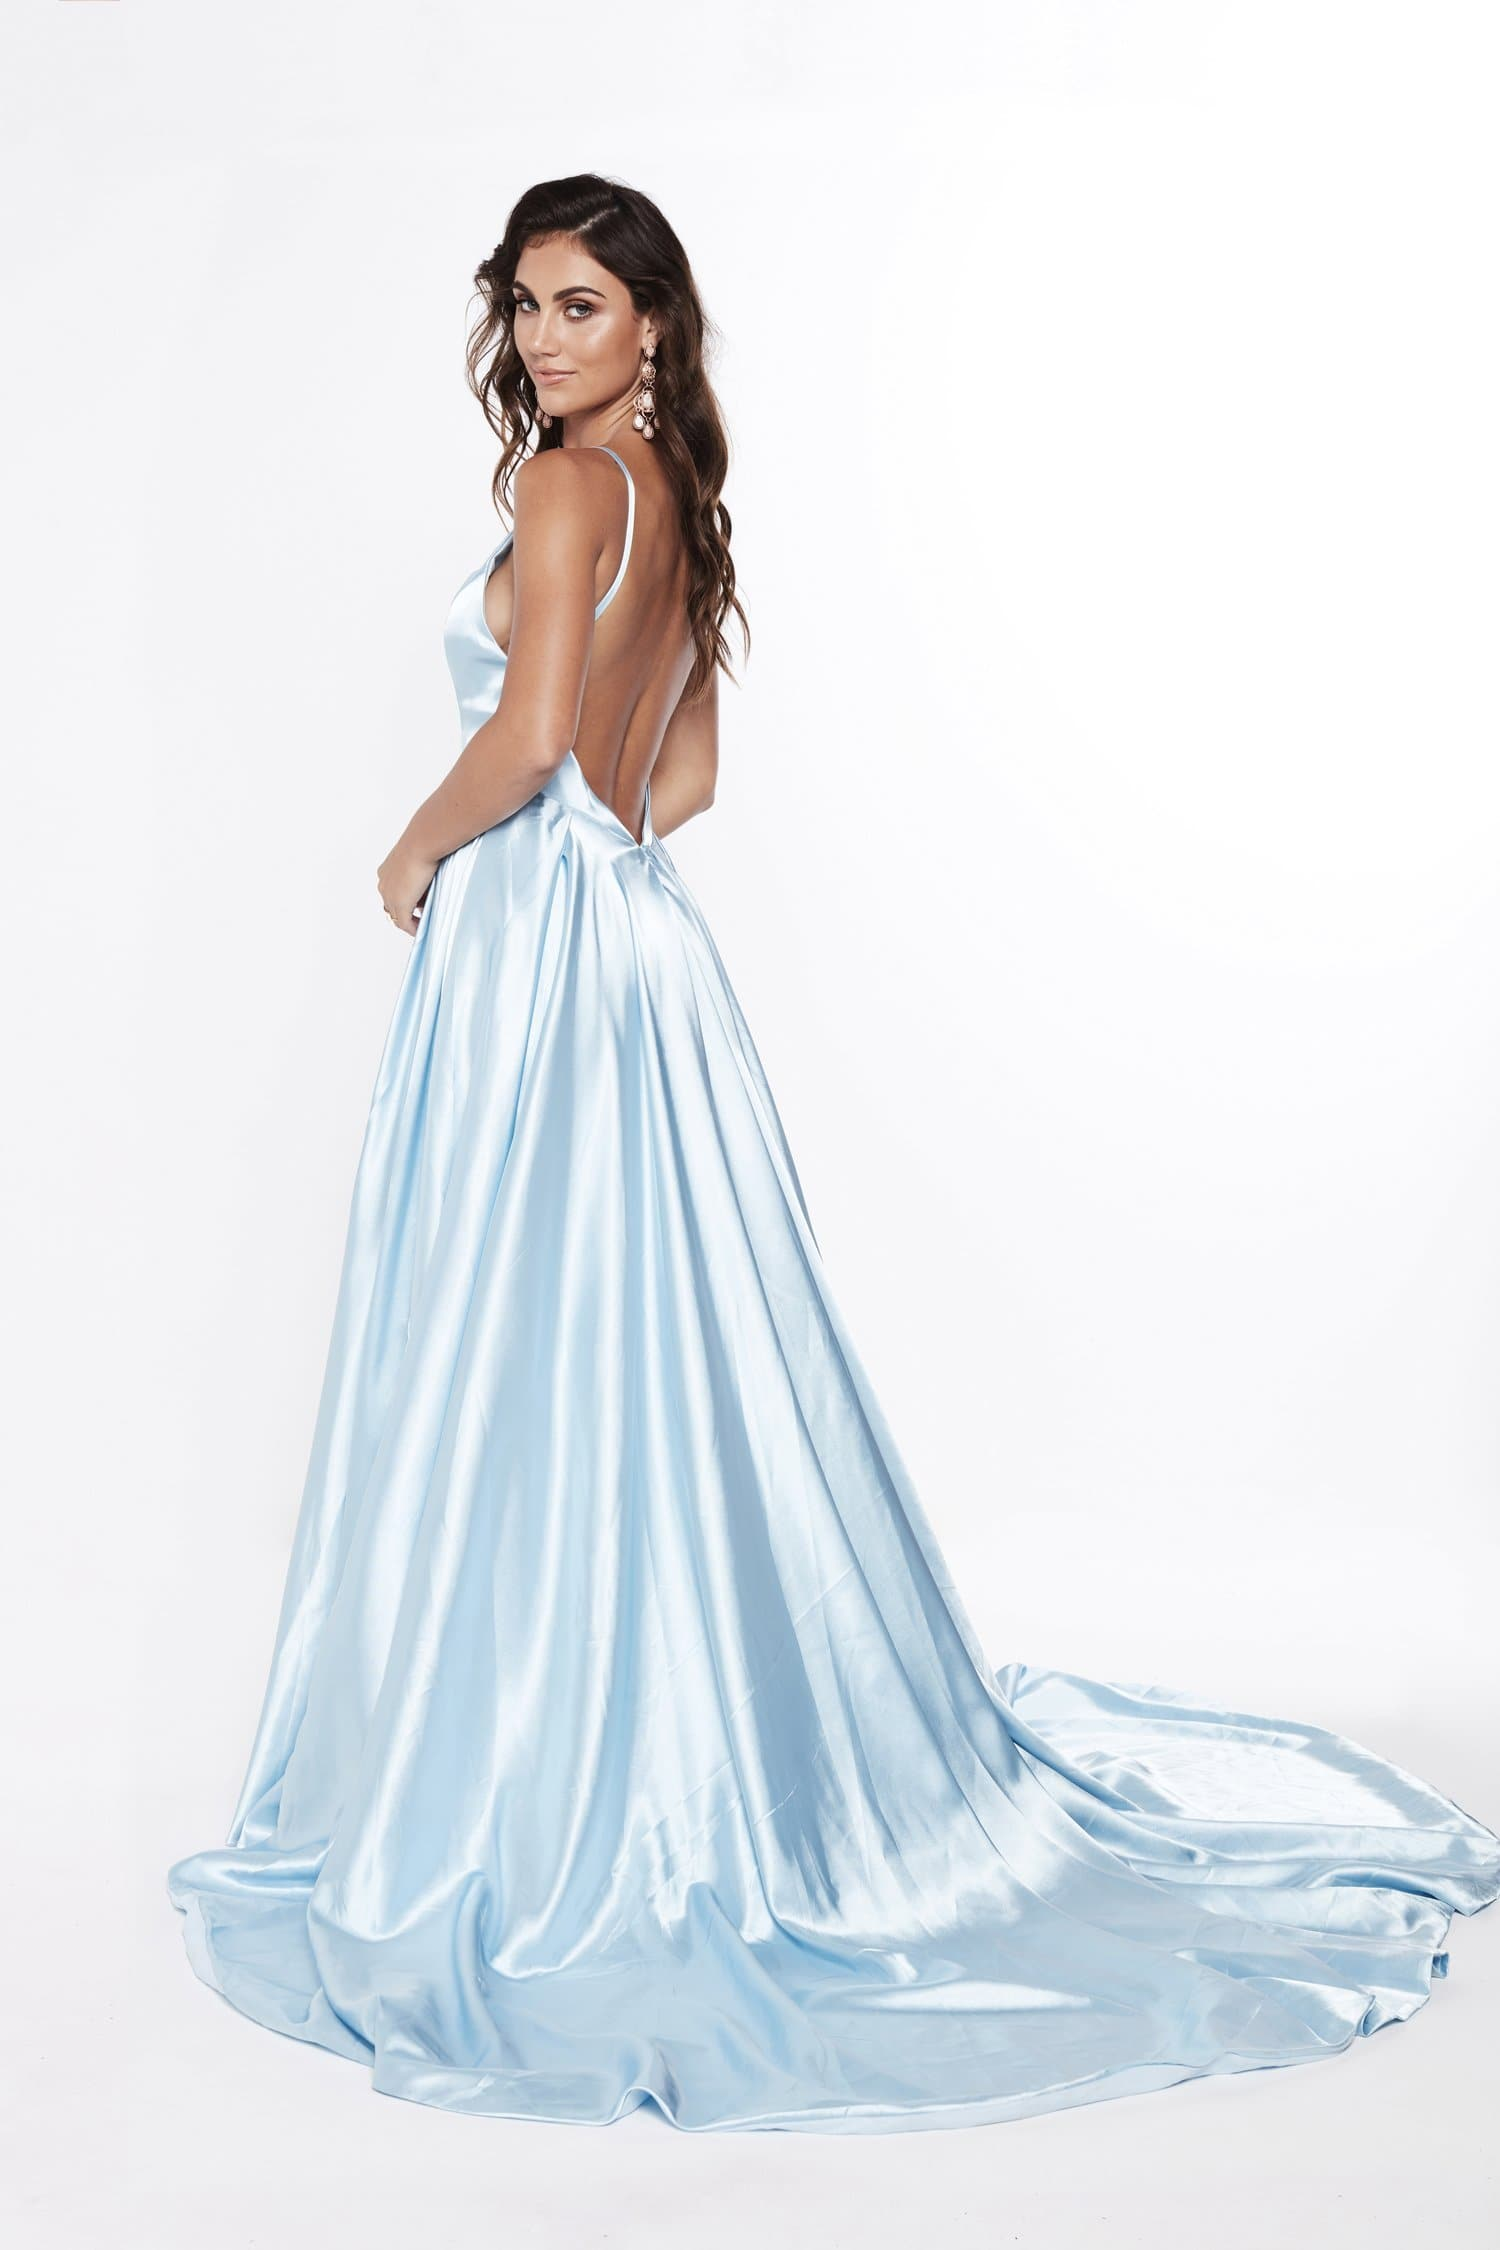 A&N Luxe Salome Satin Gown - Sky Blue